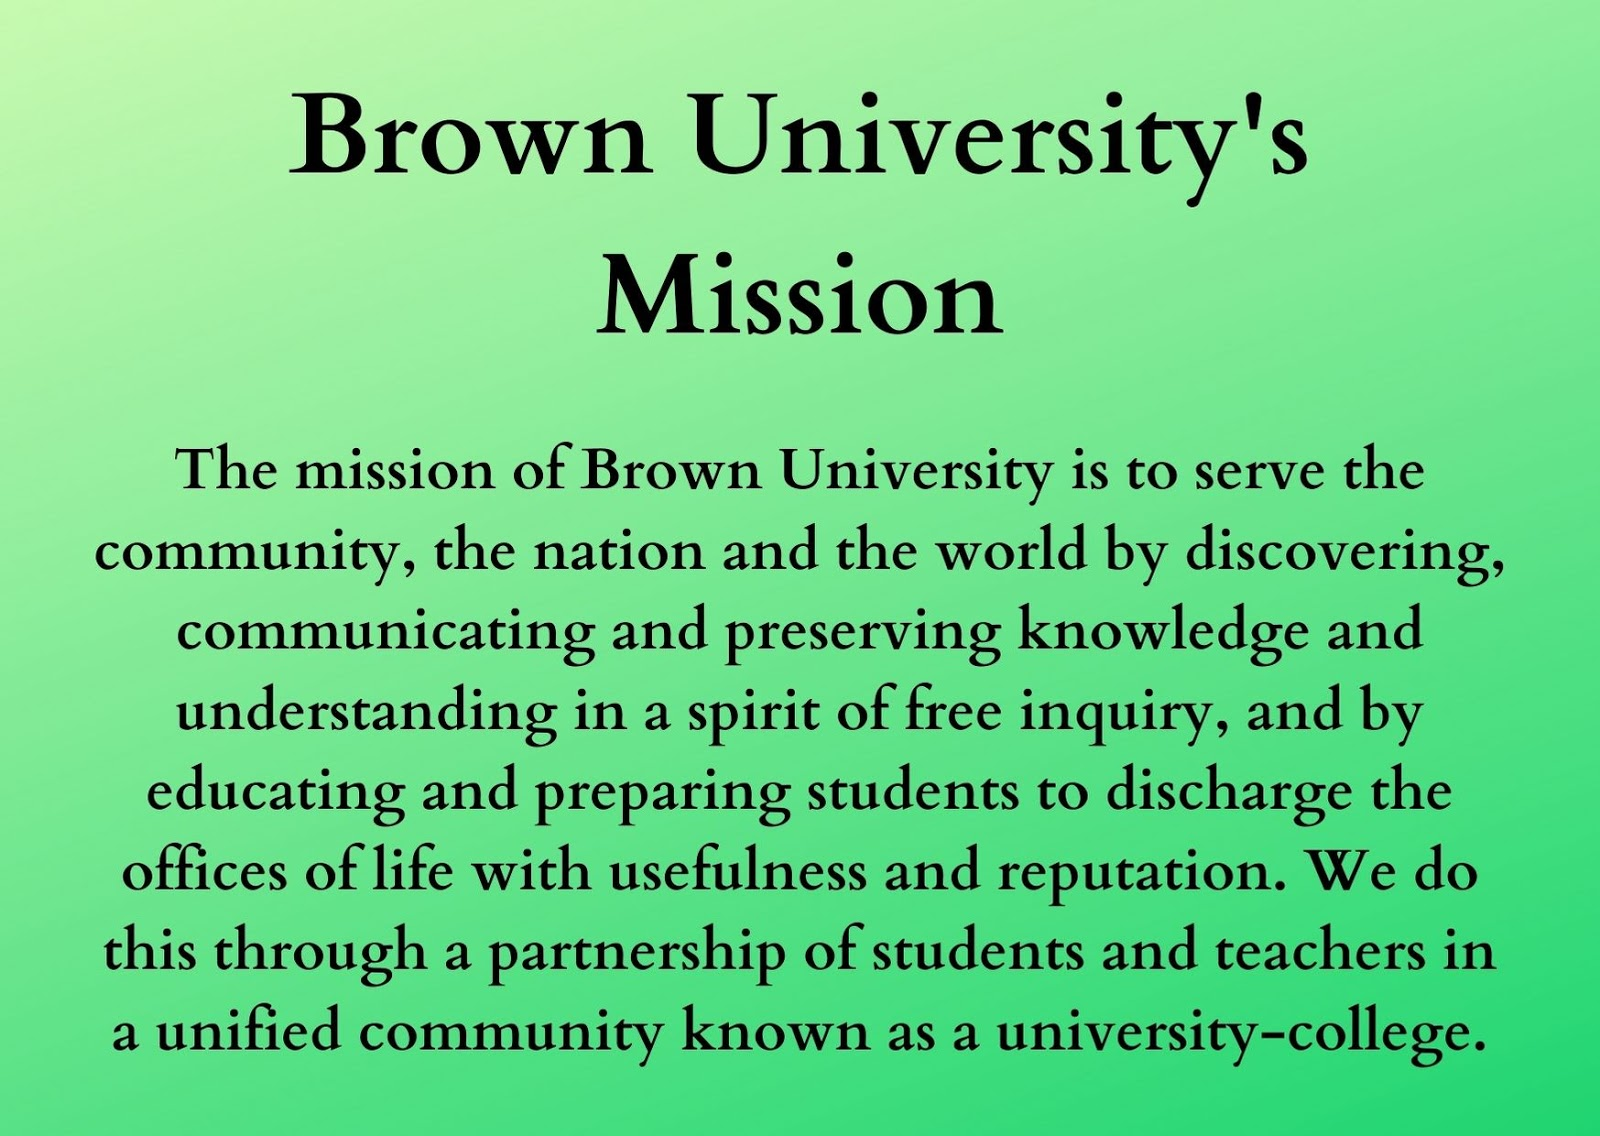 Brown University's Mission